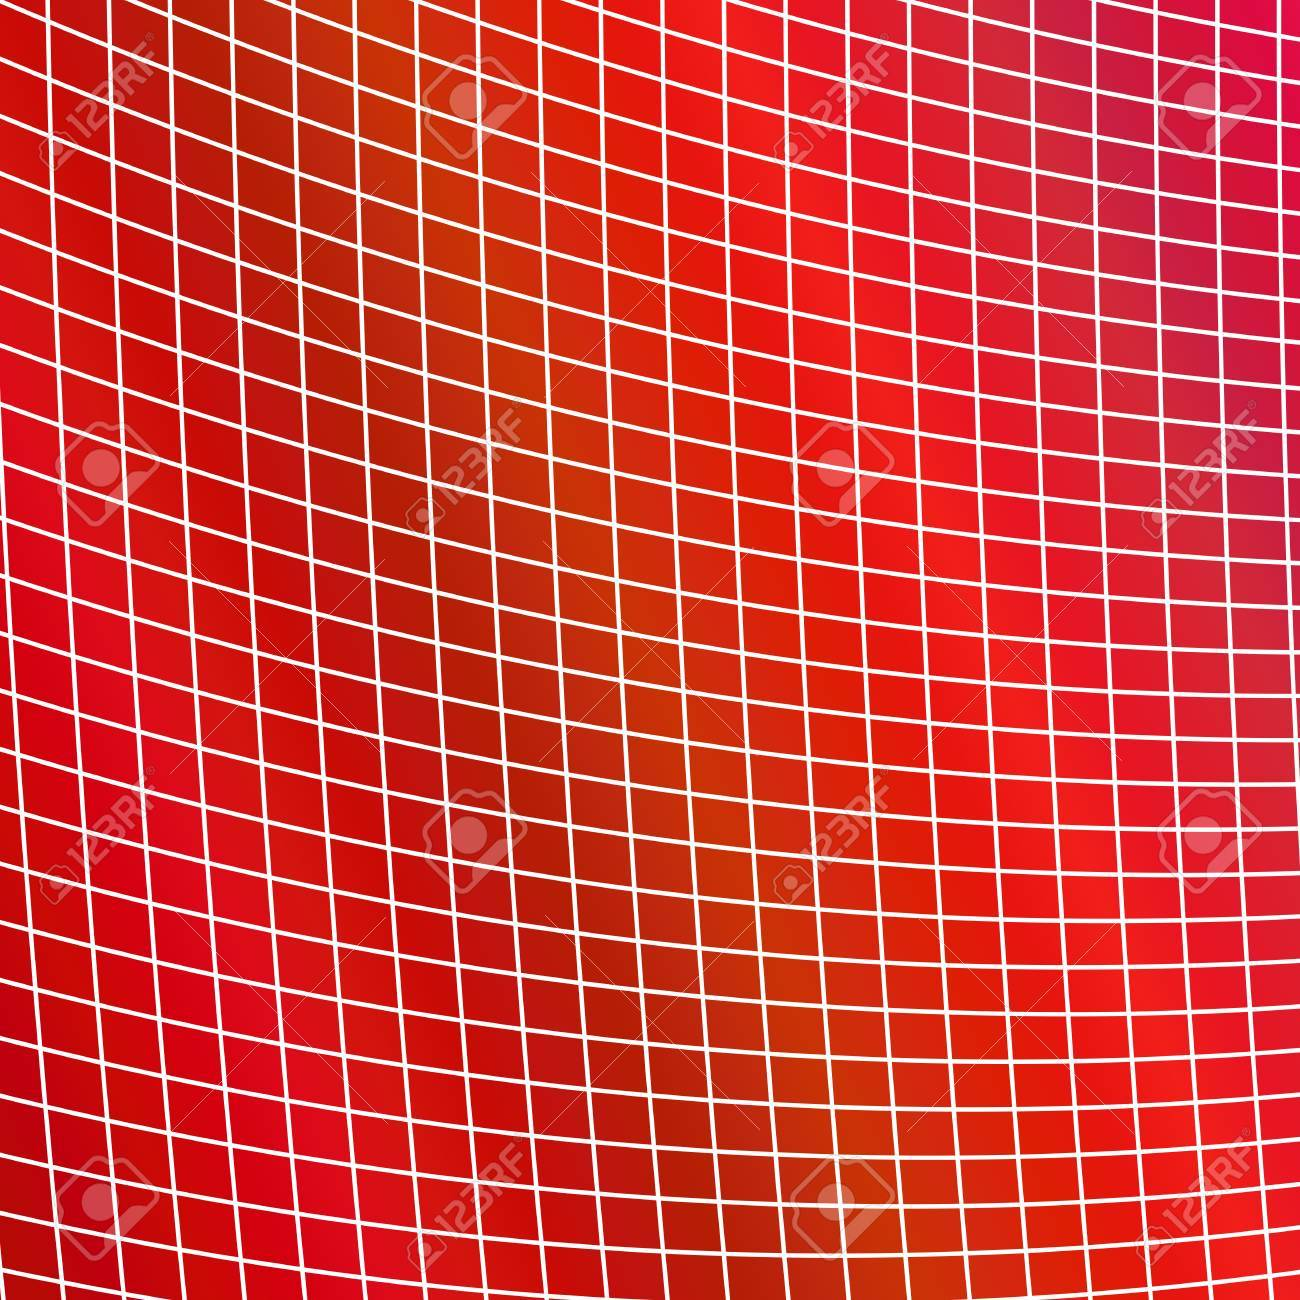 Geometrical grid background - red vector design from curved angular